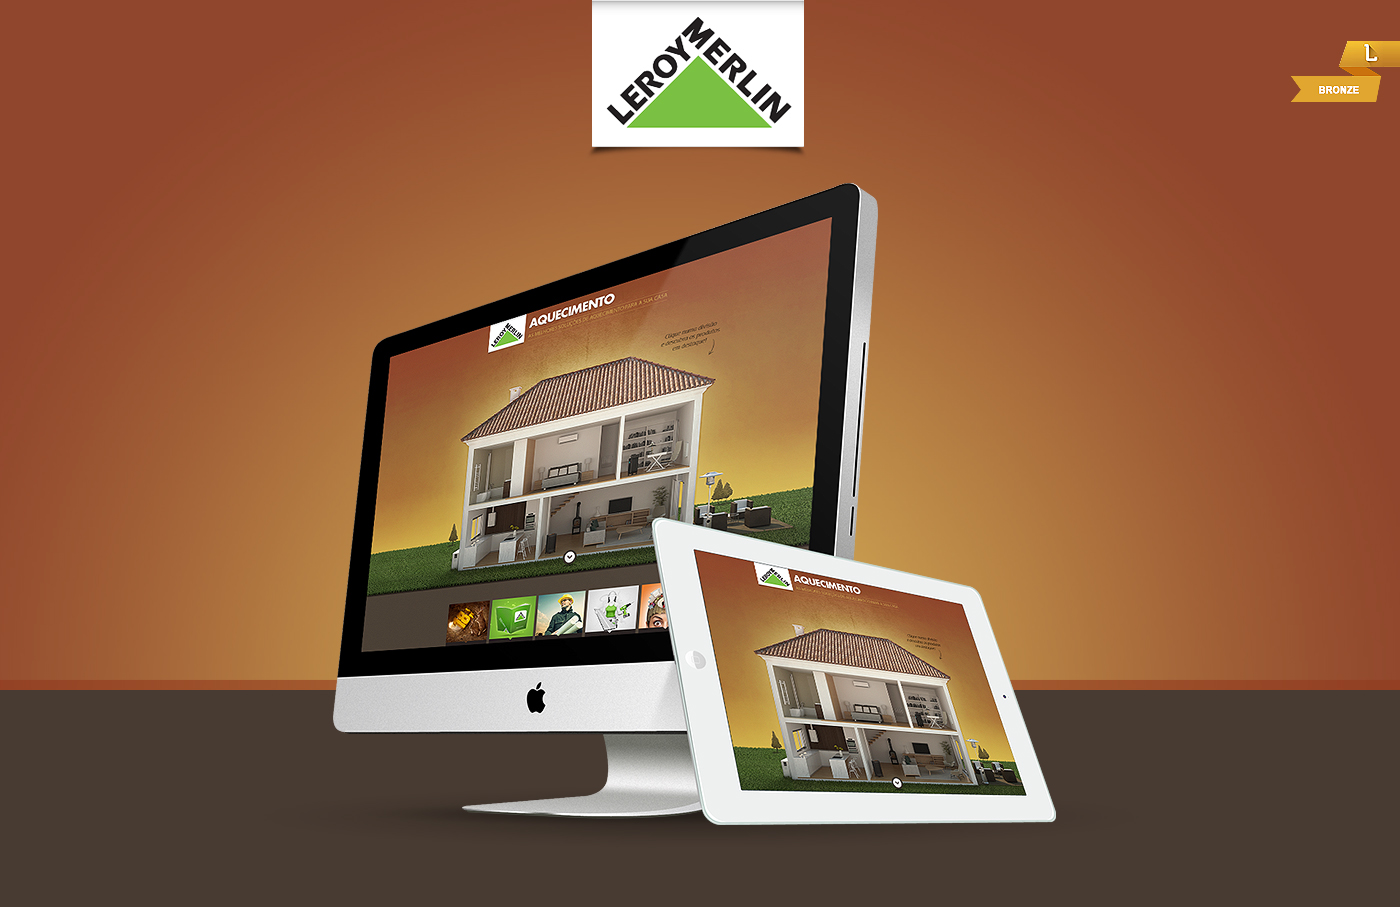 leroy merlin heating website 2013 on behance. Black Bedroom Furniture Sets. Home Design Ideas